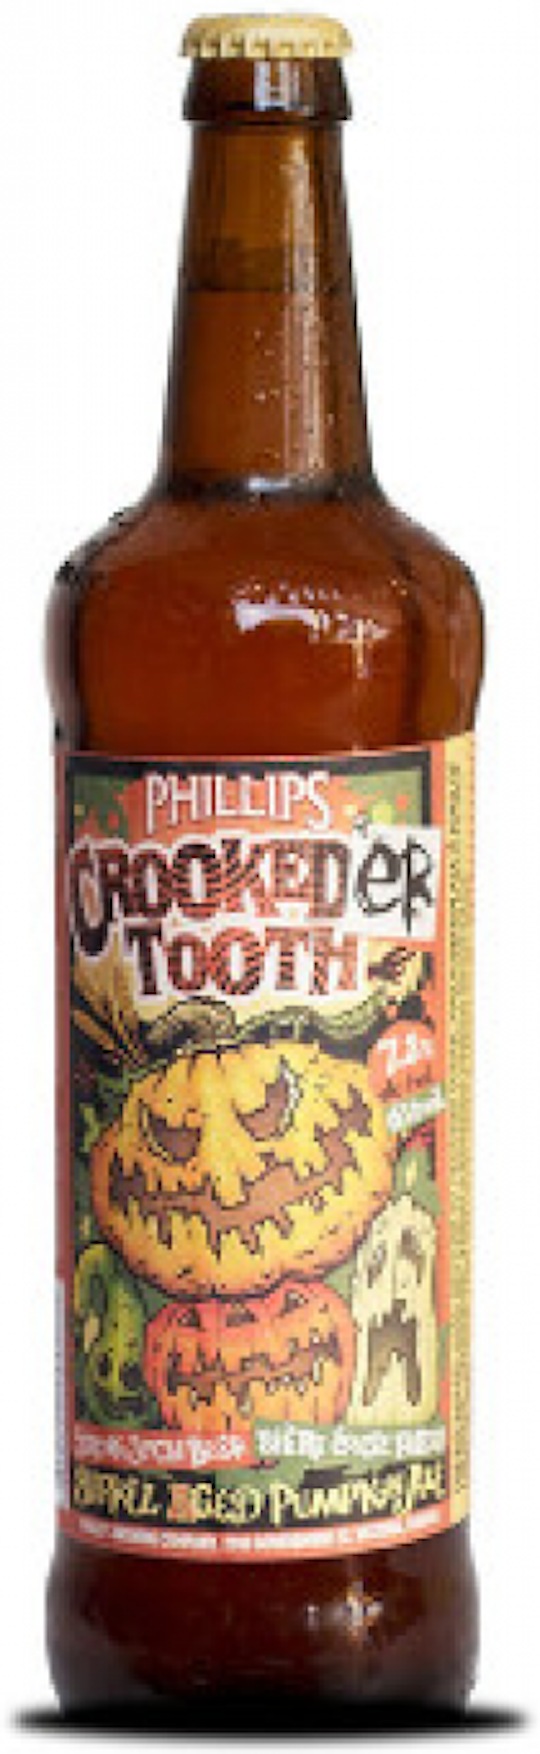 phillips-brewing-malting-co-crookeder-tooth-barrelaged-pumpkin-ale_1477675556